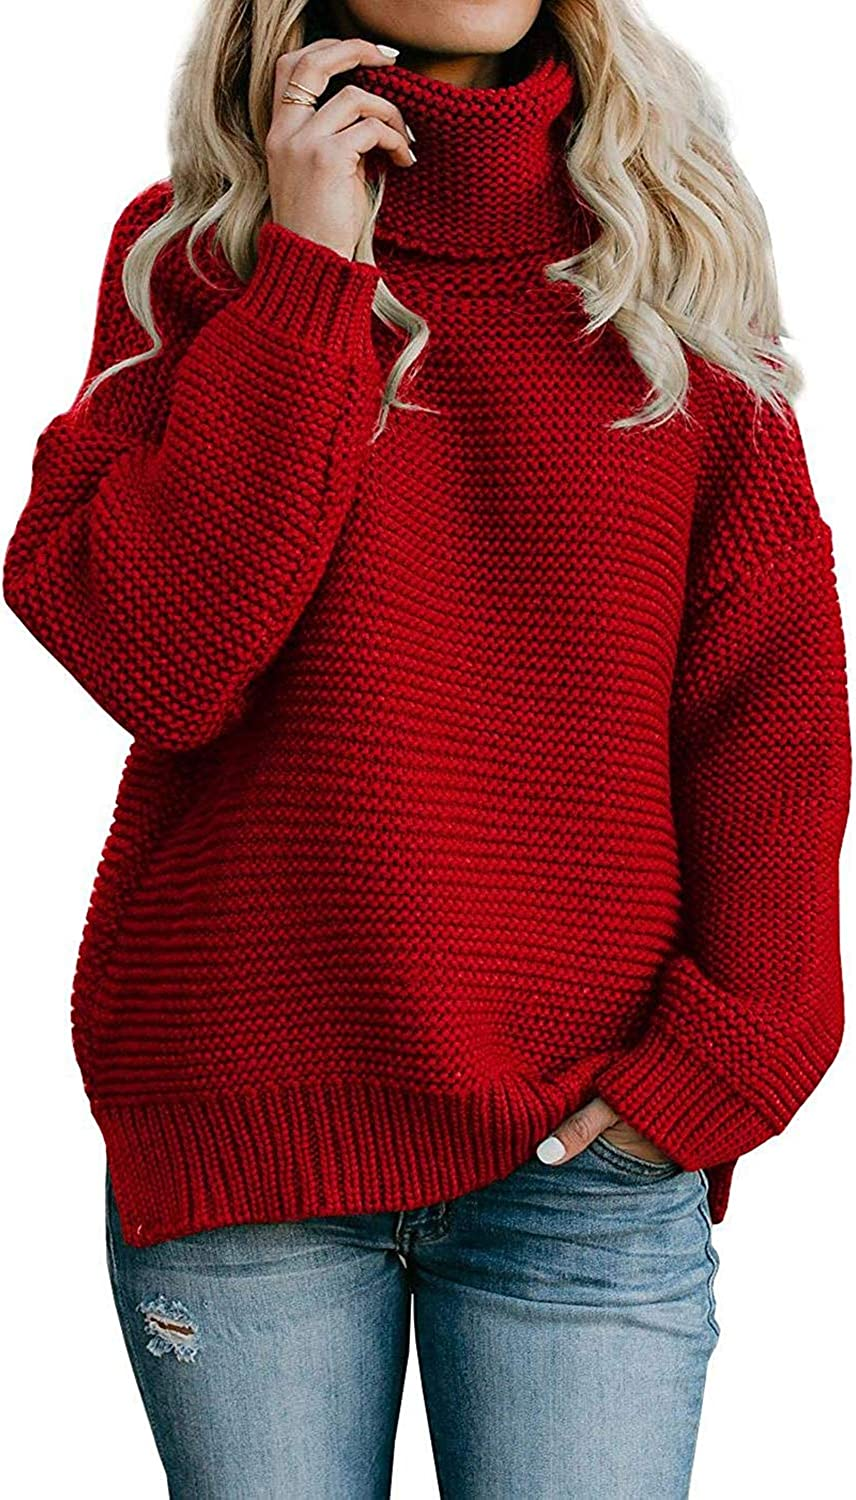 QACOHU Womens Chunky Turtleneck Sweater Long Sleeve Knit Pullover Sweaters Tops